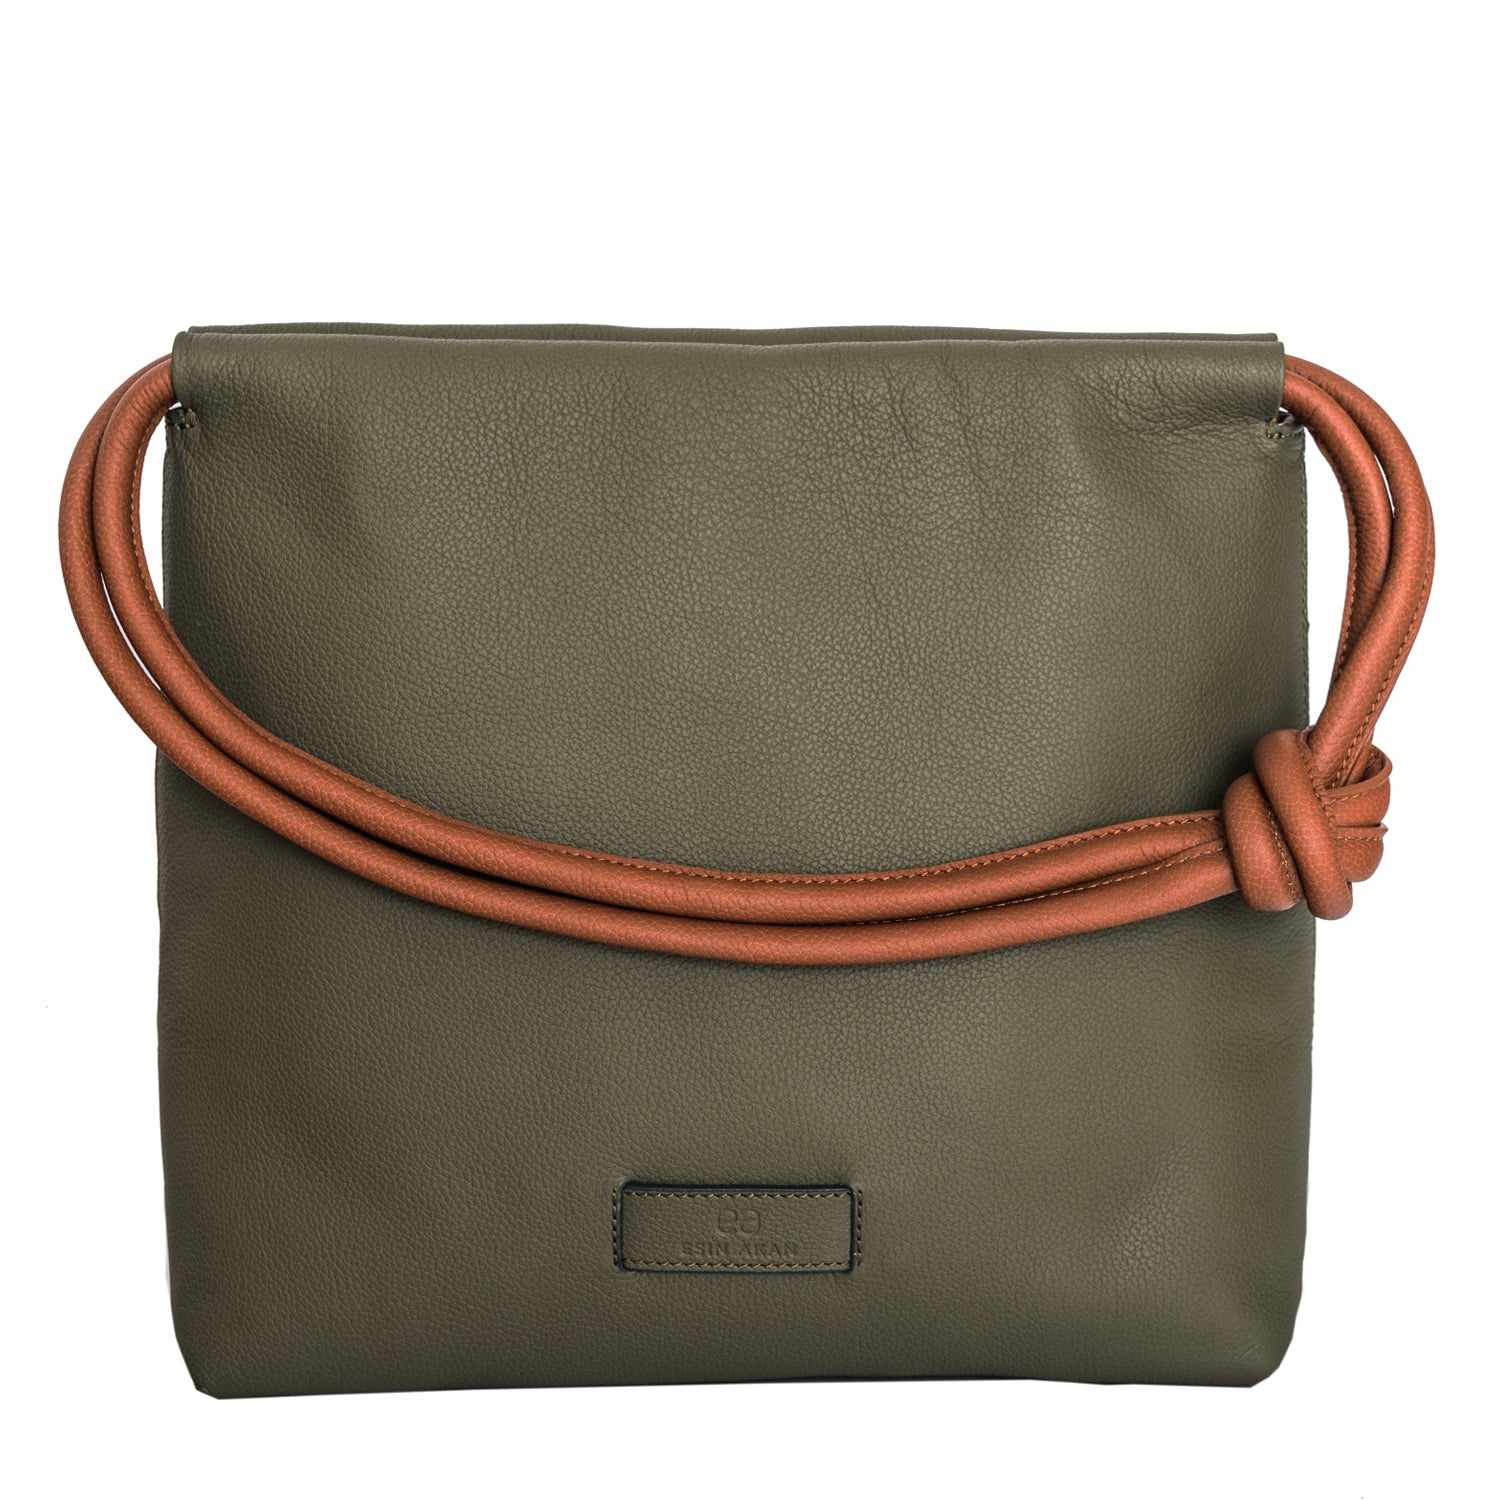 A convertible leather green shoulder bag for women with a knot detail on the strap that could be used as a clutch bag with its roll down feature, front image.